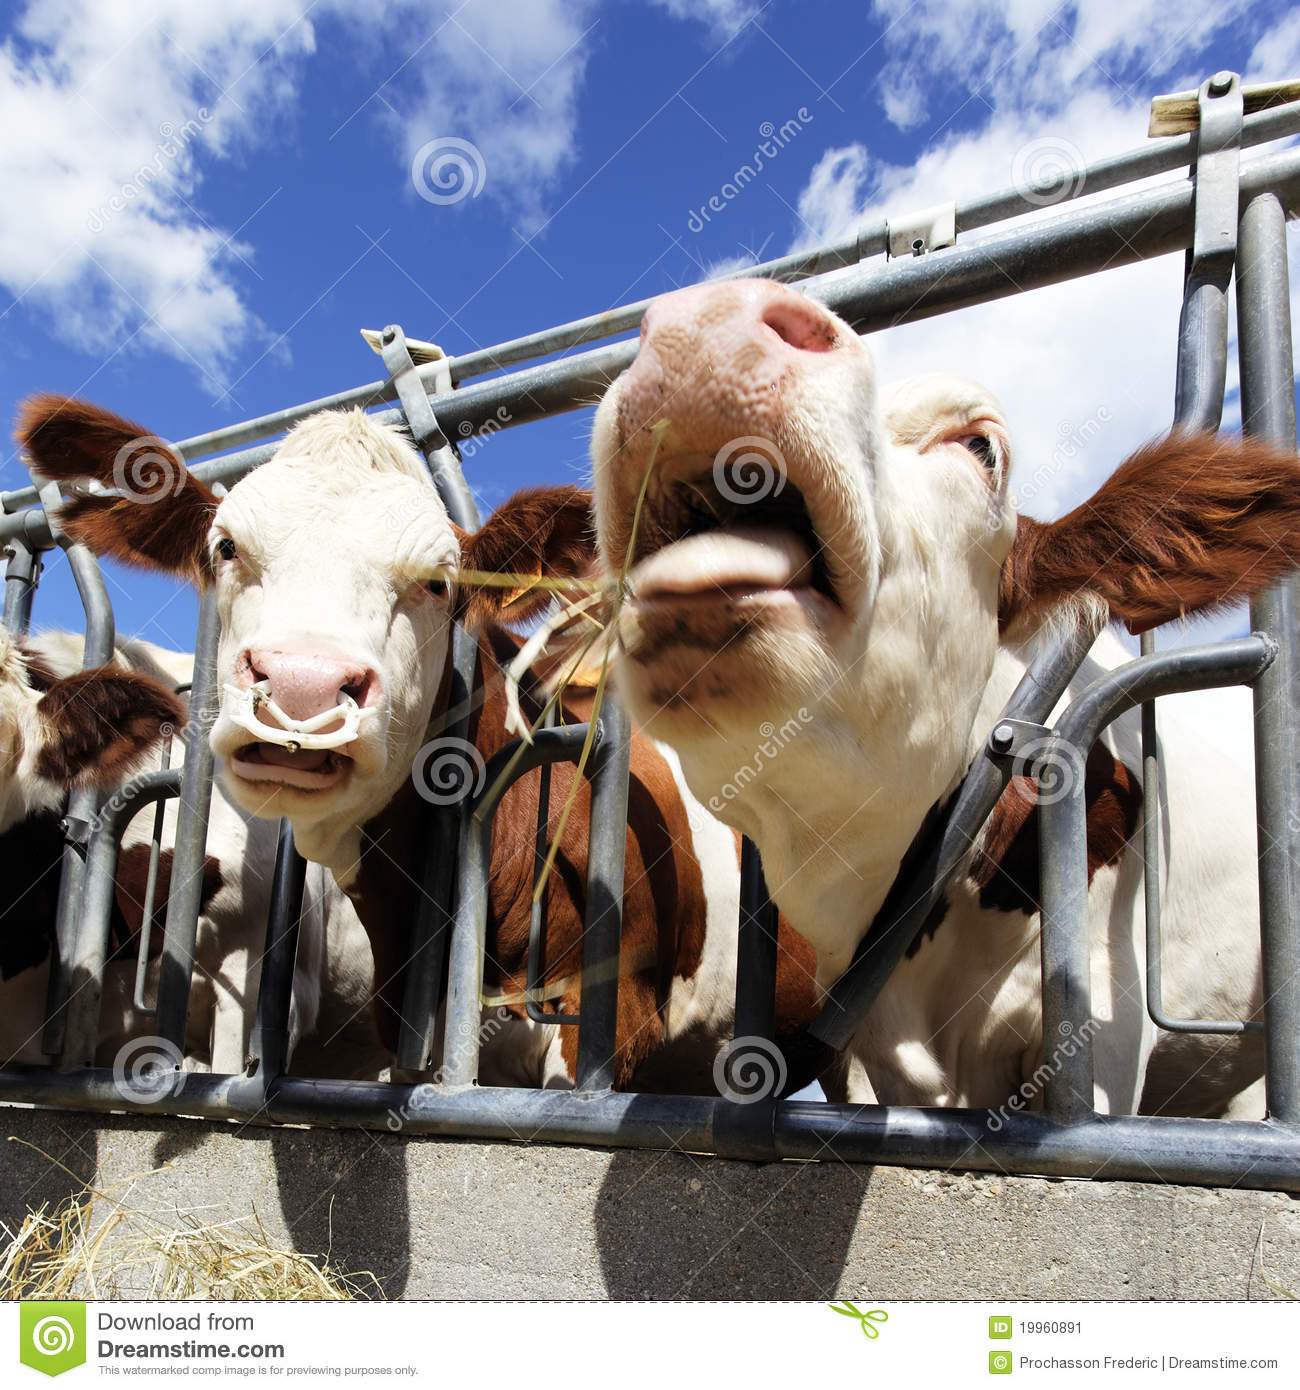 Crazy Cow Stock Image   Image  19960891